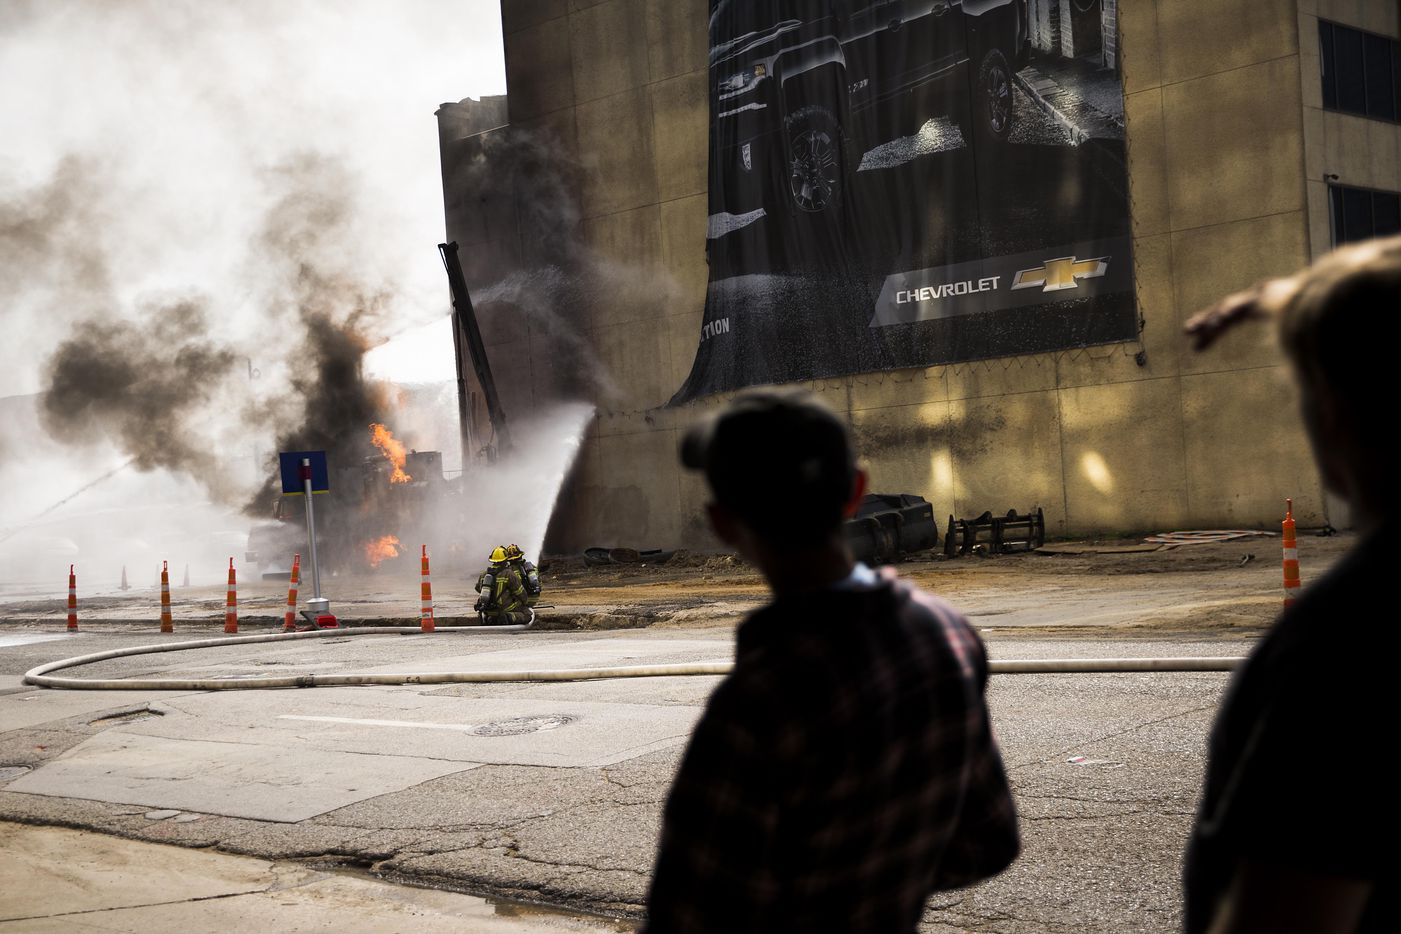 Bystanders watch as Dallas Fire Rescue responds to the scene of a fire at 2100 Main Street where an unspecified company struck a gas line on Friday, March 10, 2017, in Dallas.